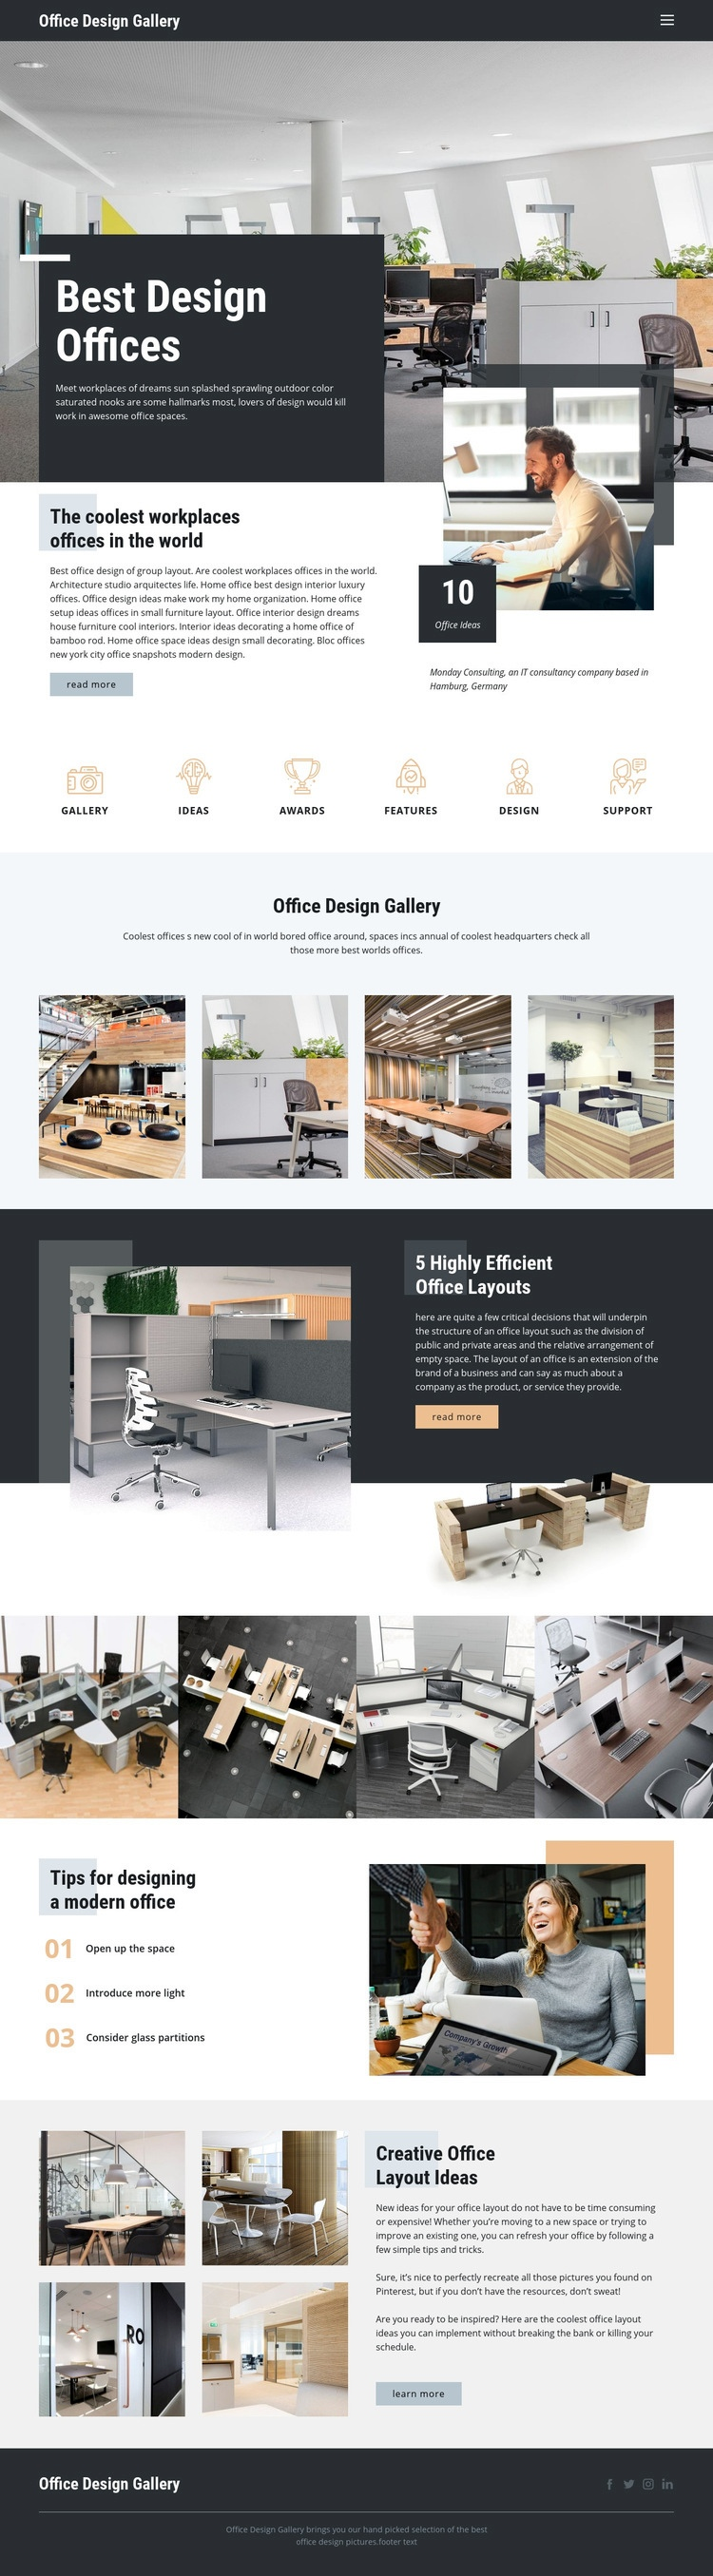 Best Design Offices Html Code Example